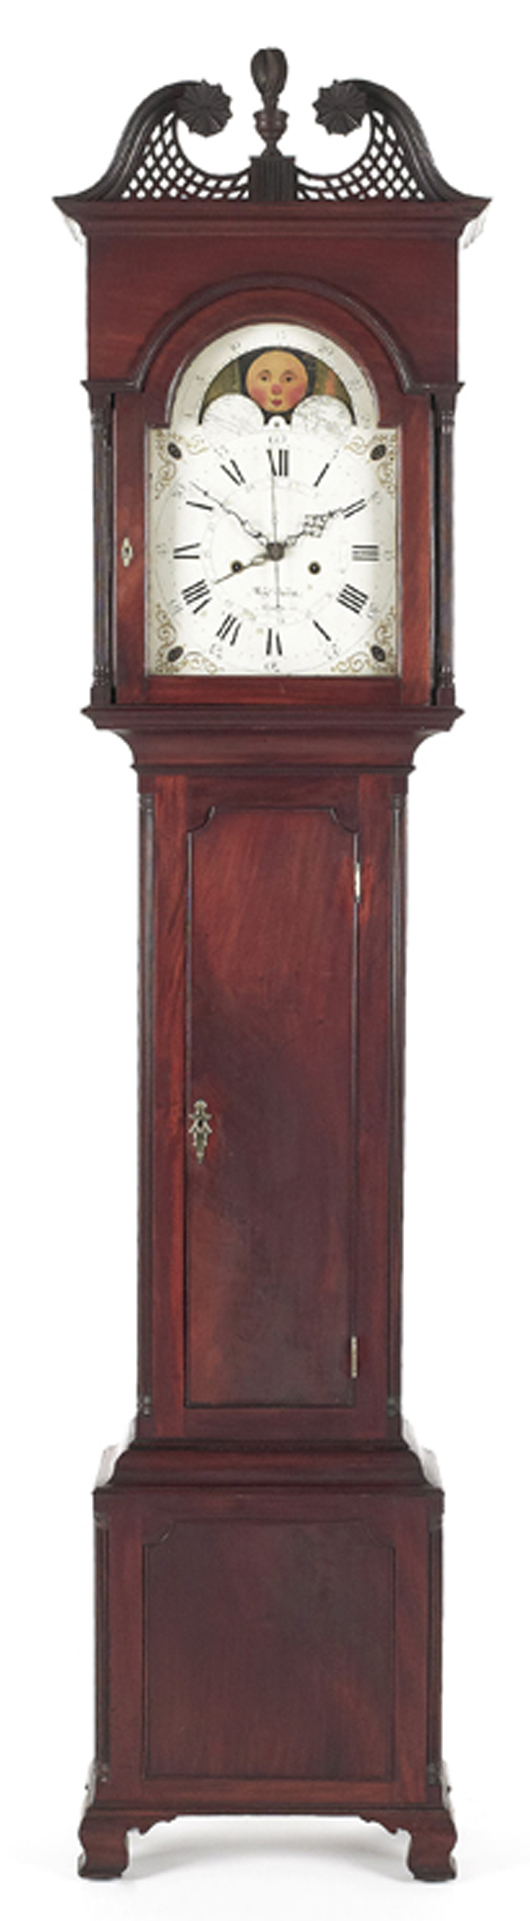 The first lot of the sale, a Chester County, Pa., mahogany tall case clock by Benjamin Garrett of Goshen Township, went to a local collector for $45,030. Image by Pook & Pook Inc.